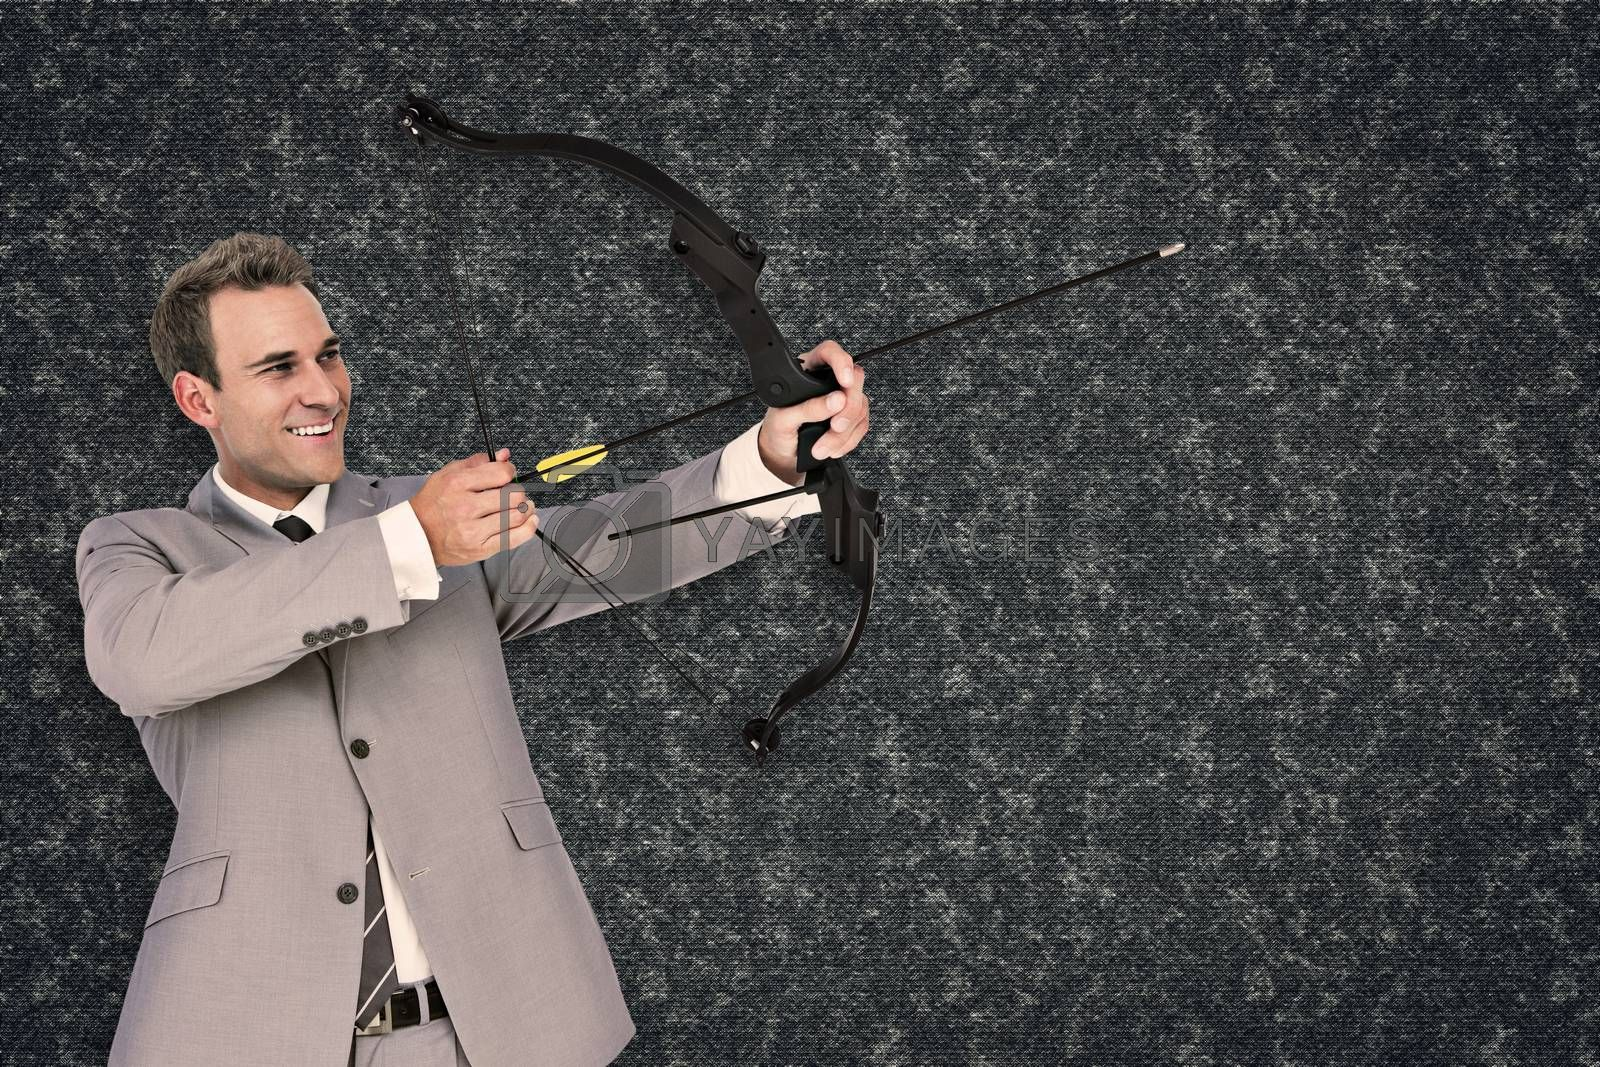 Businessman shooting arrow against black background